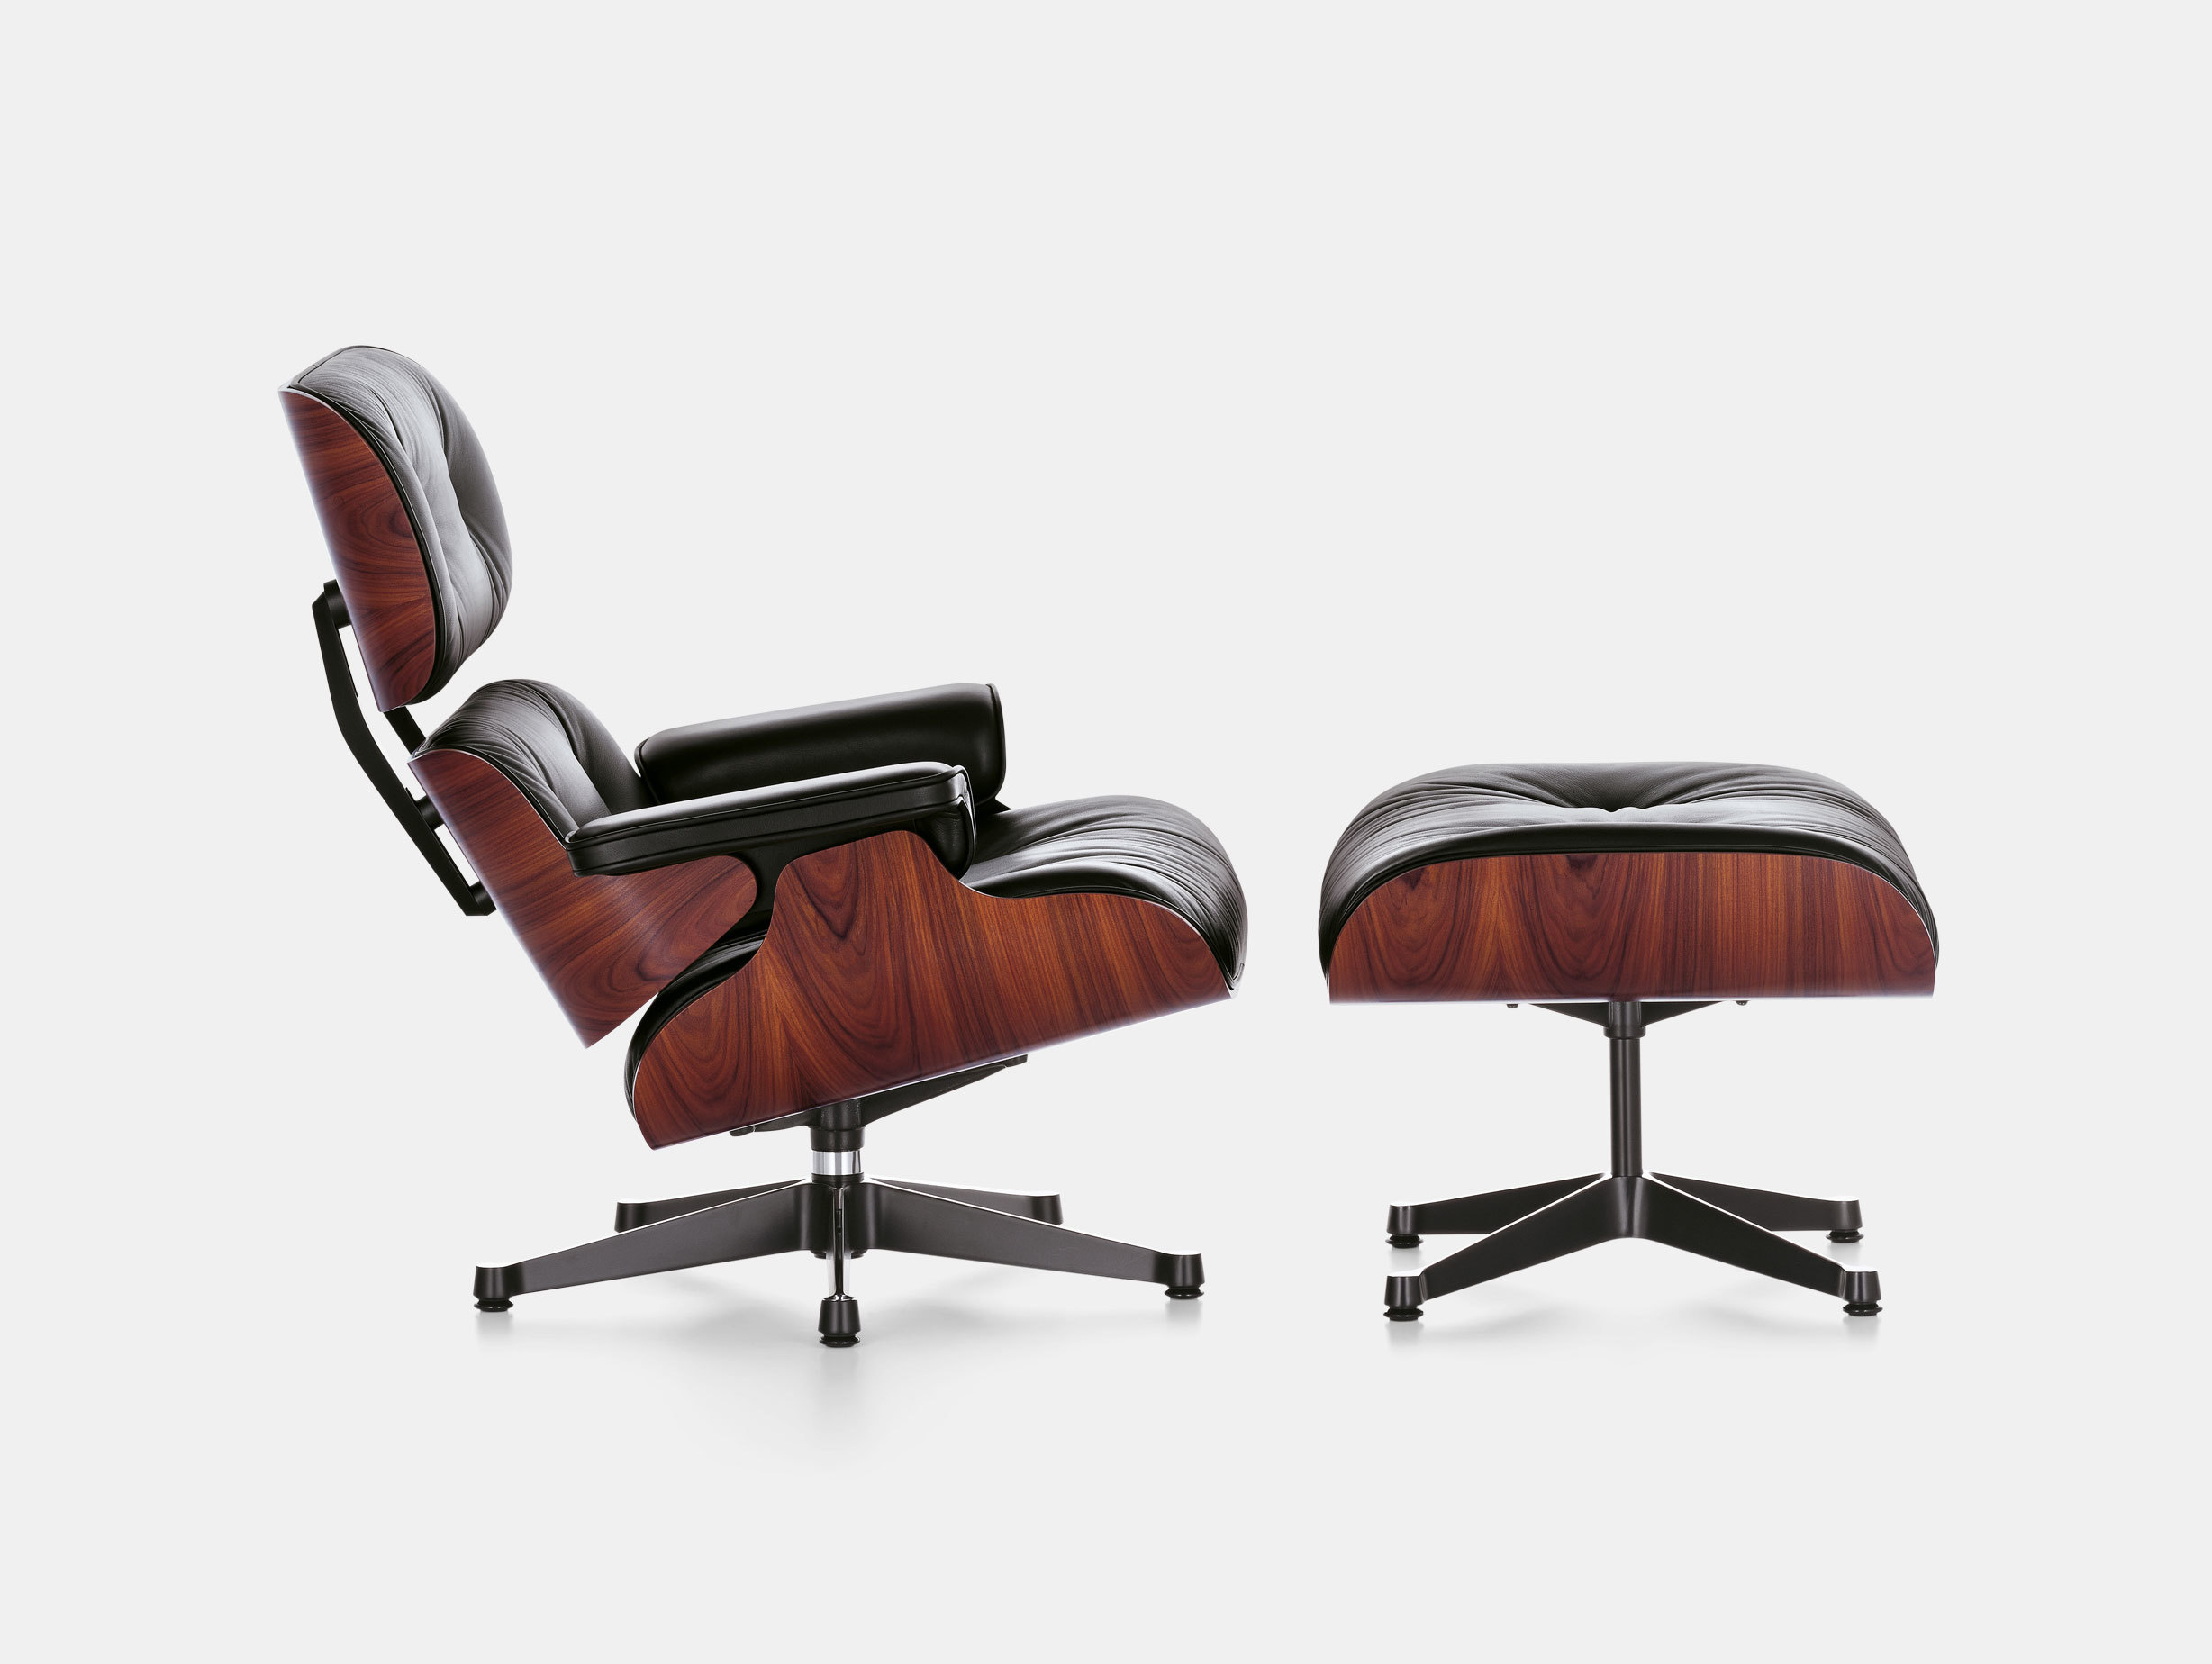 Vitra Eames Lounge Chair Black Eames Lounge Chair Ottoman Viaduct